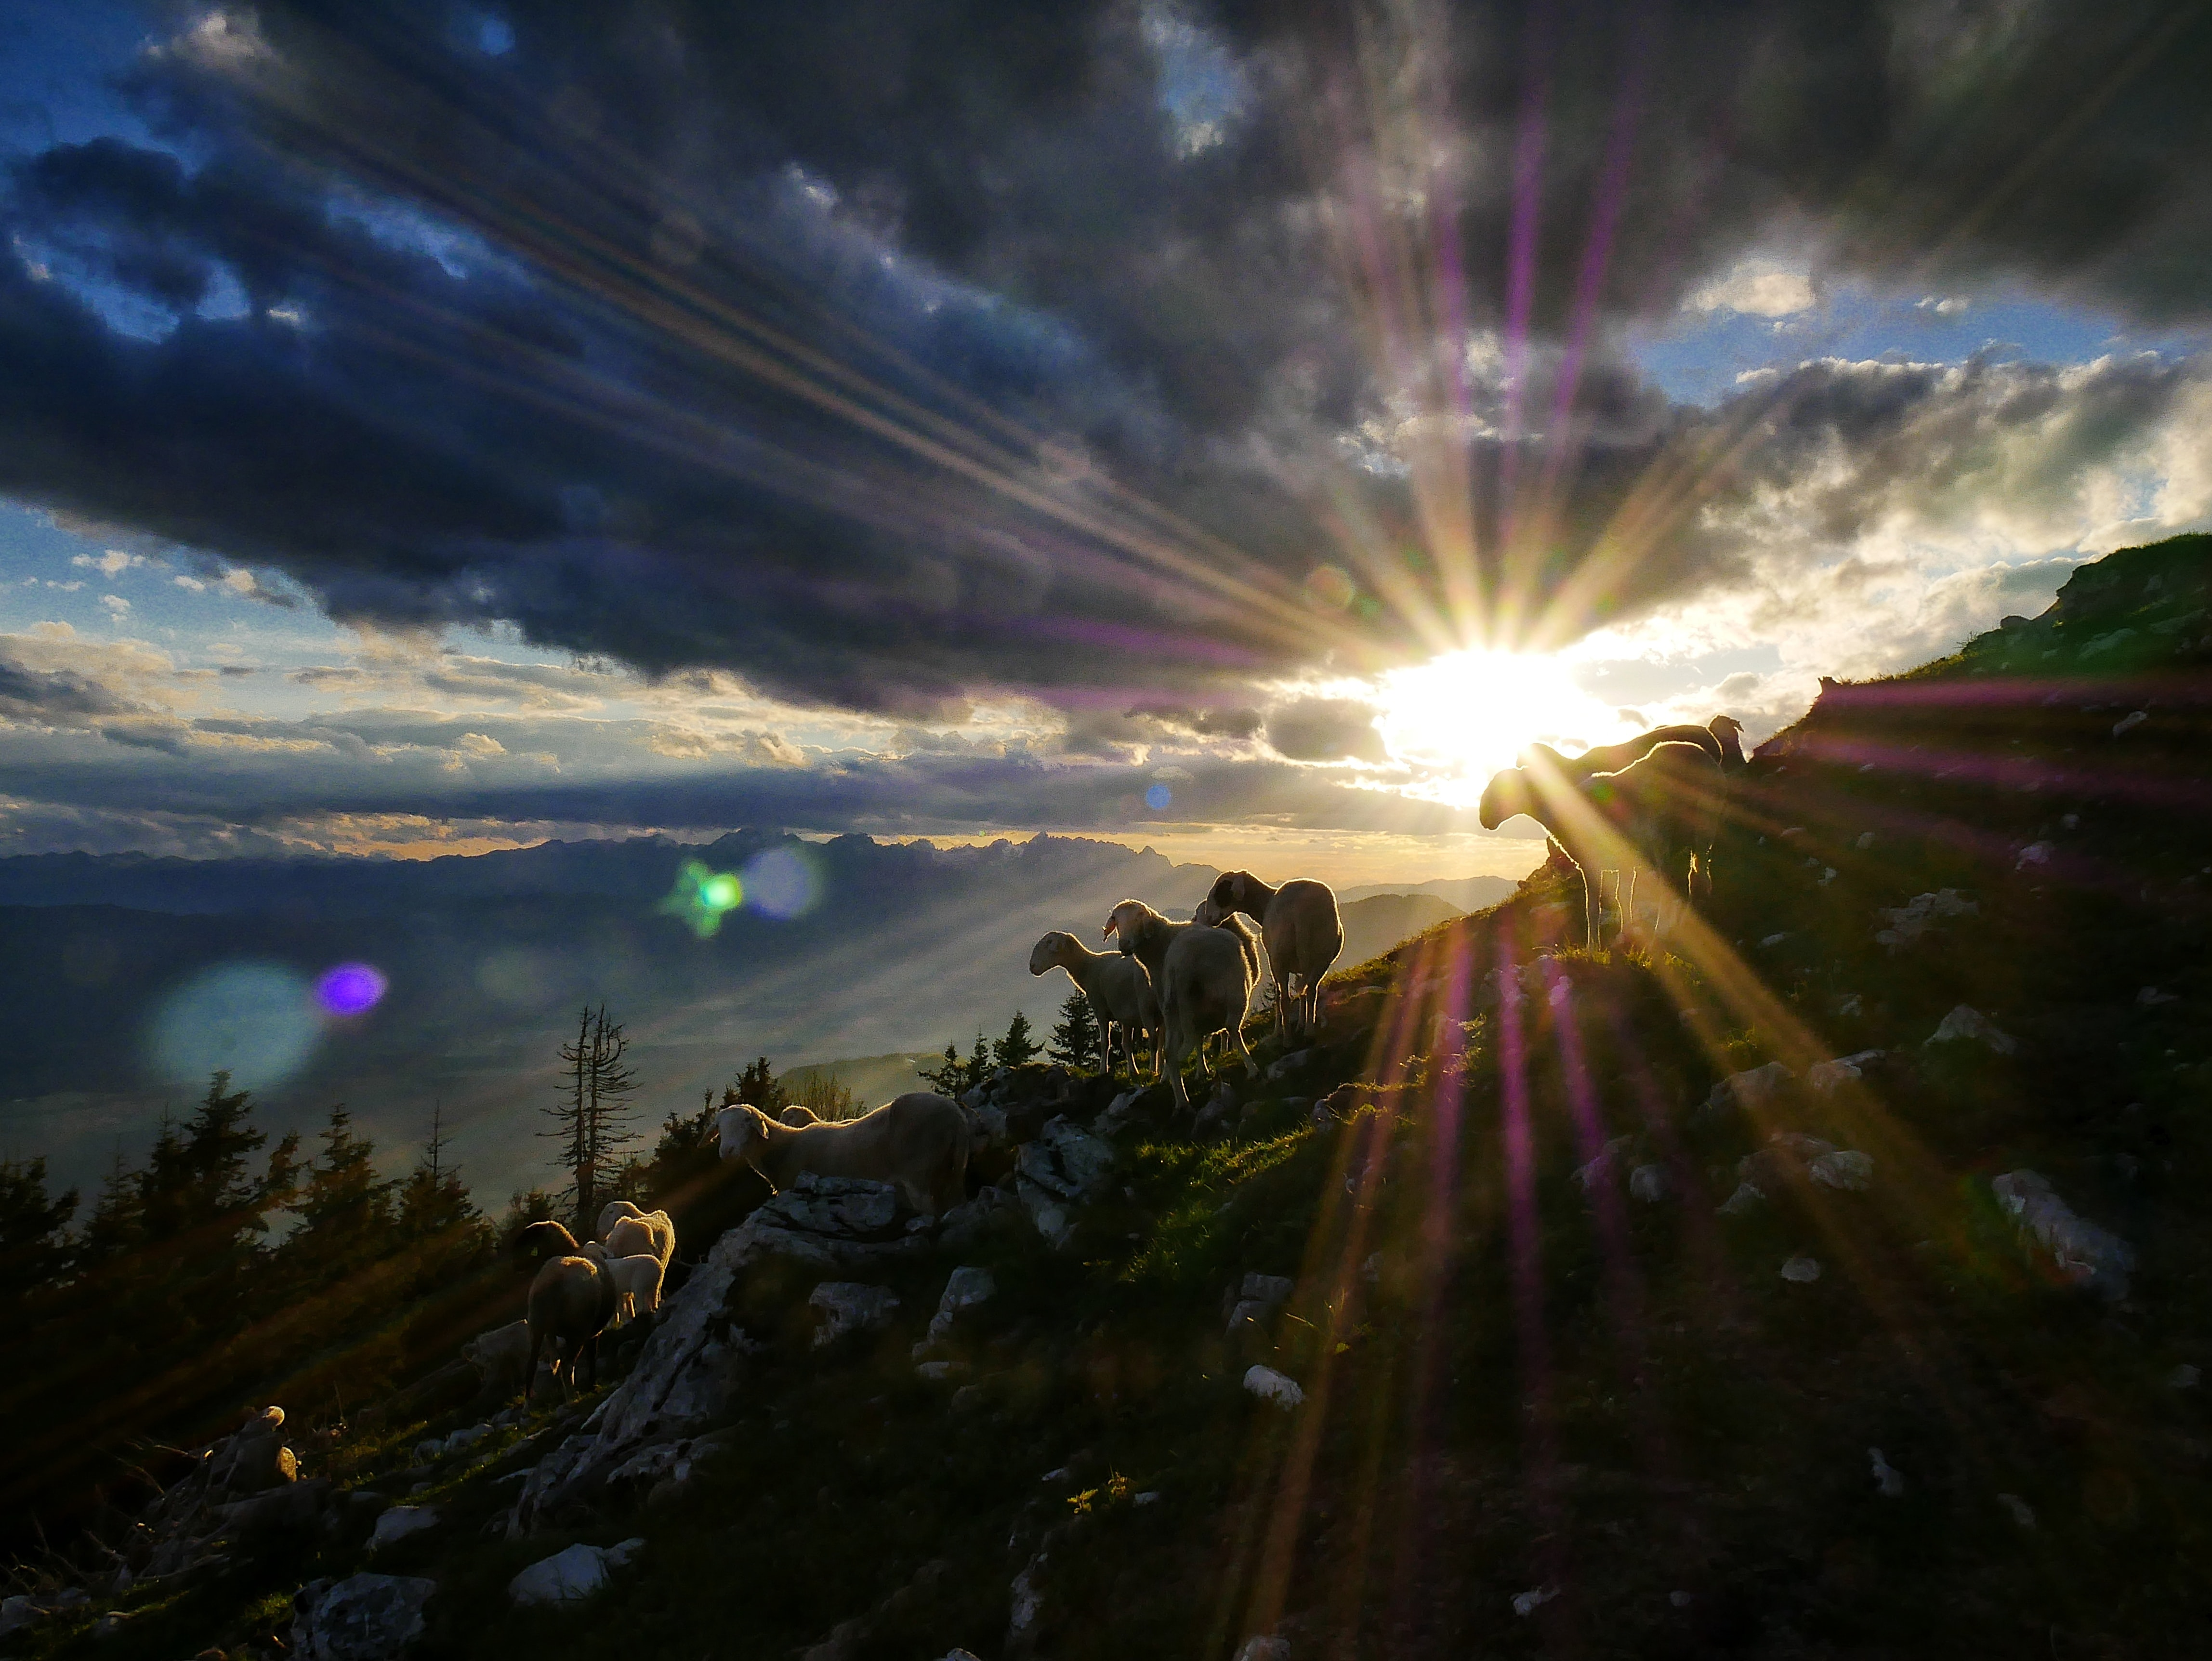 sun rays peak through clouds over herd of goats on hill